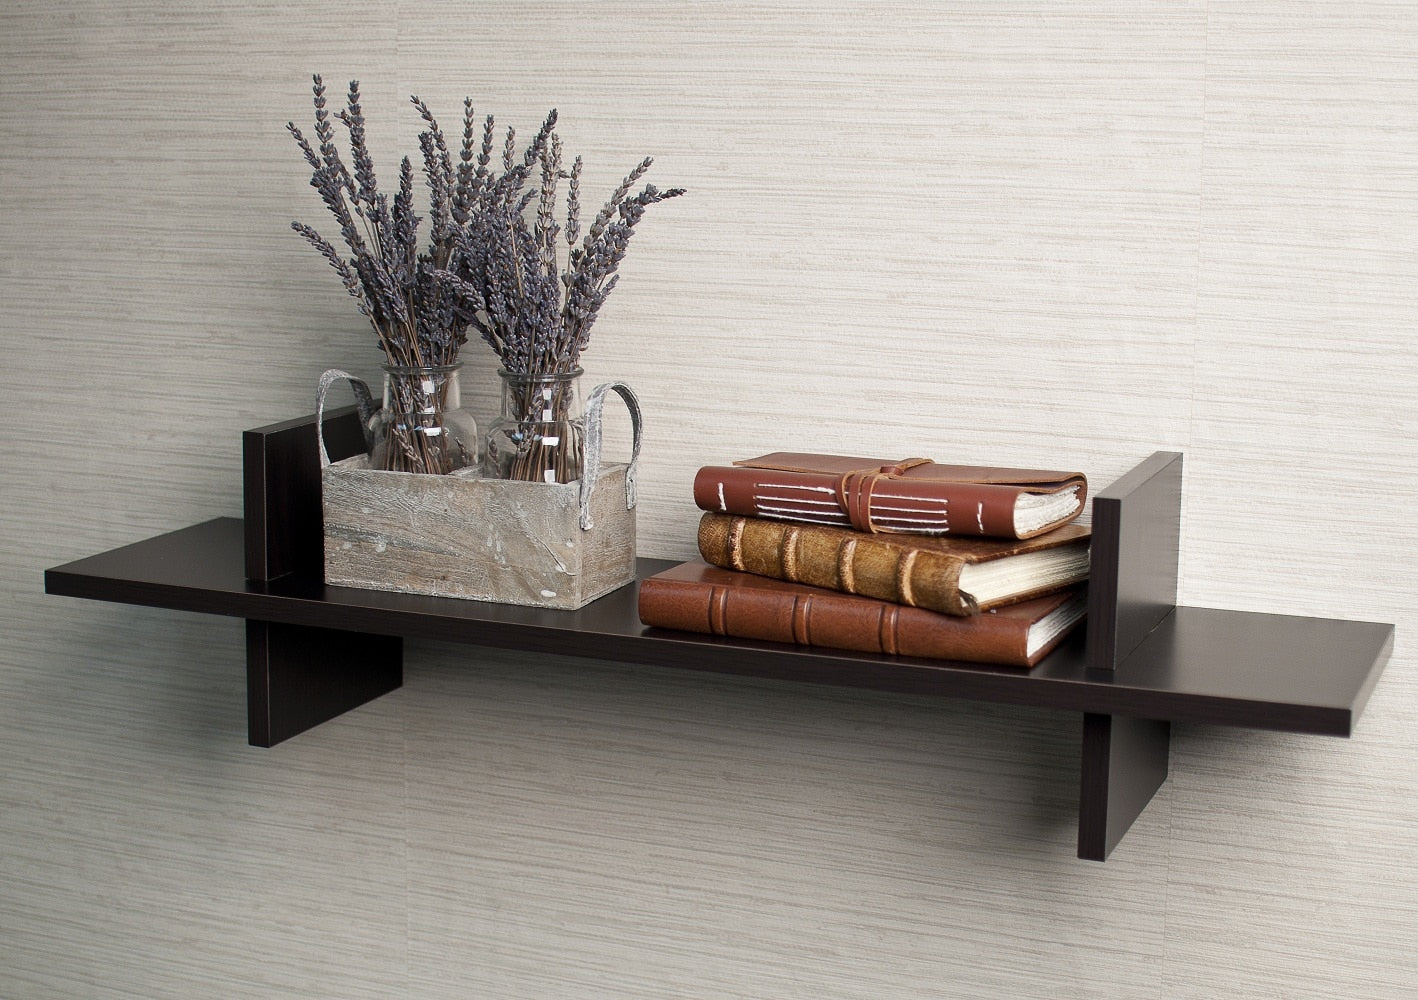 Laminated Espresso 'H' Shaped Wall Shelf